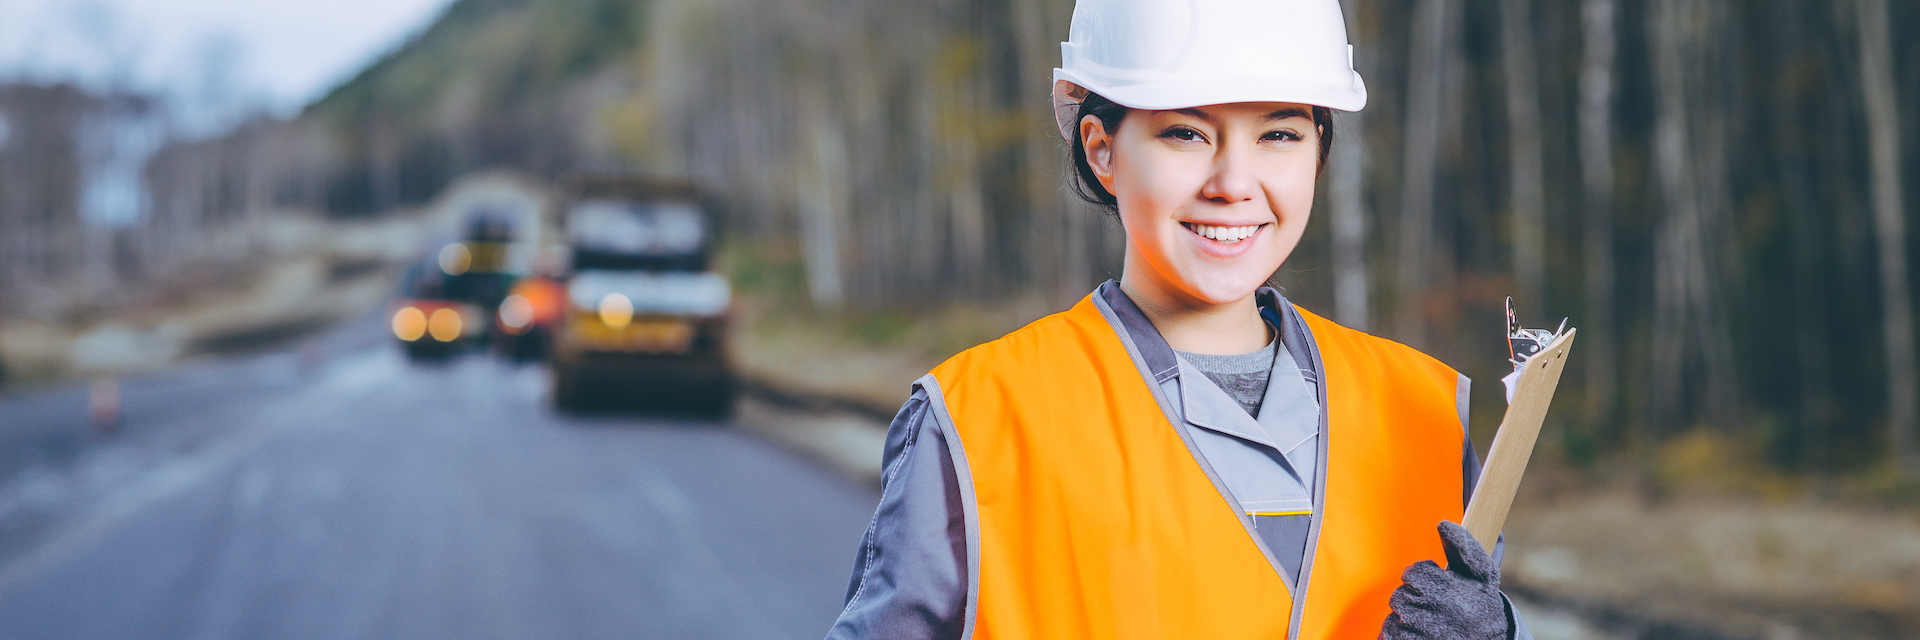 Woman working in the Civil Industry